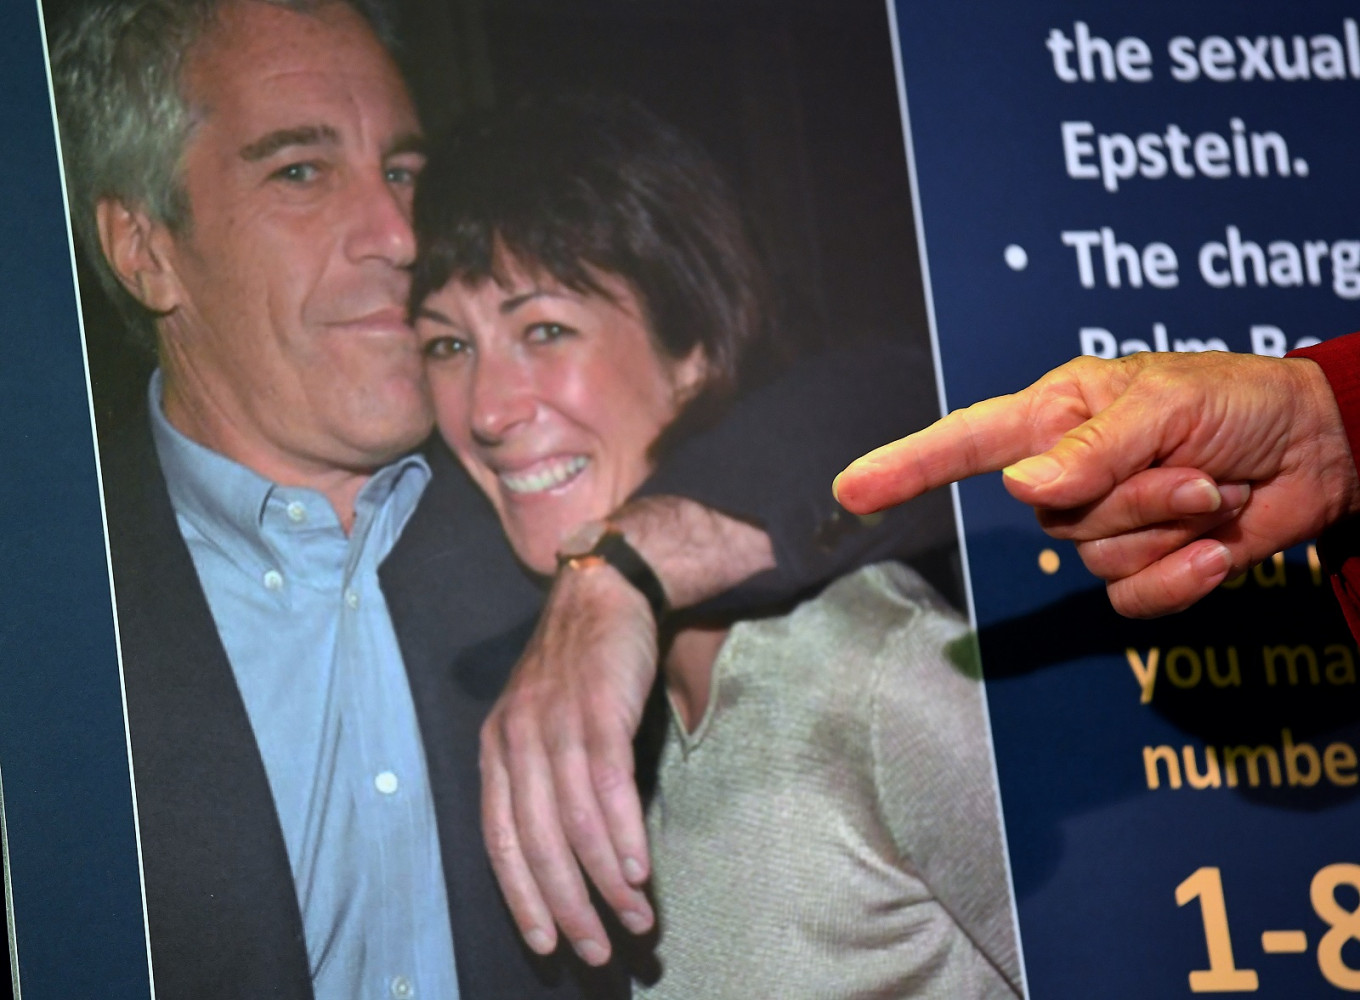 US says Ghislaine Maxwell should stay behind bars, deserves no bail